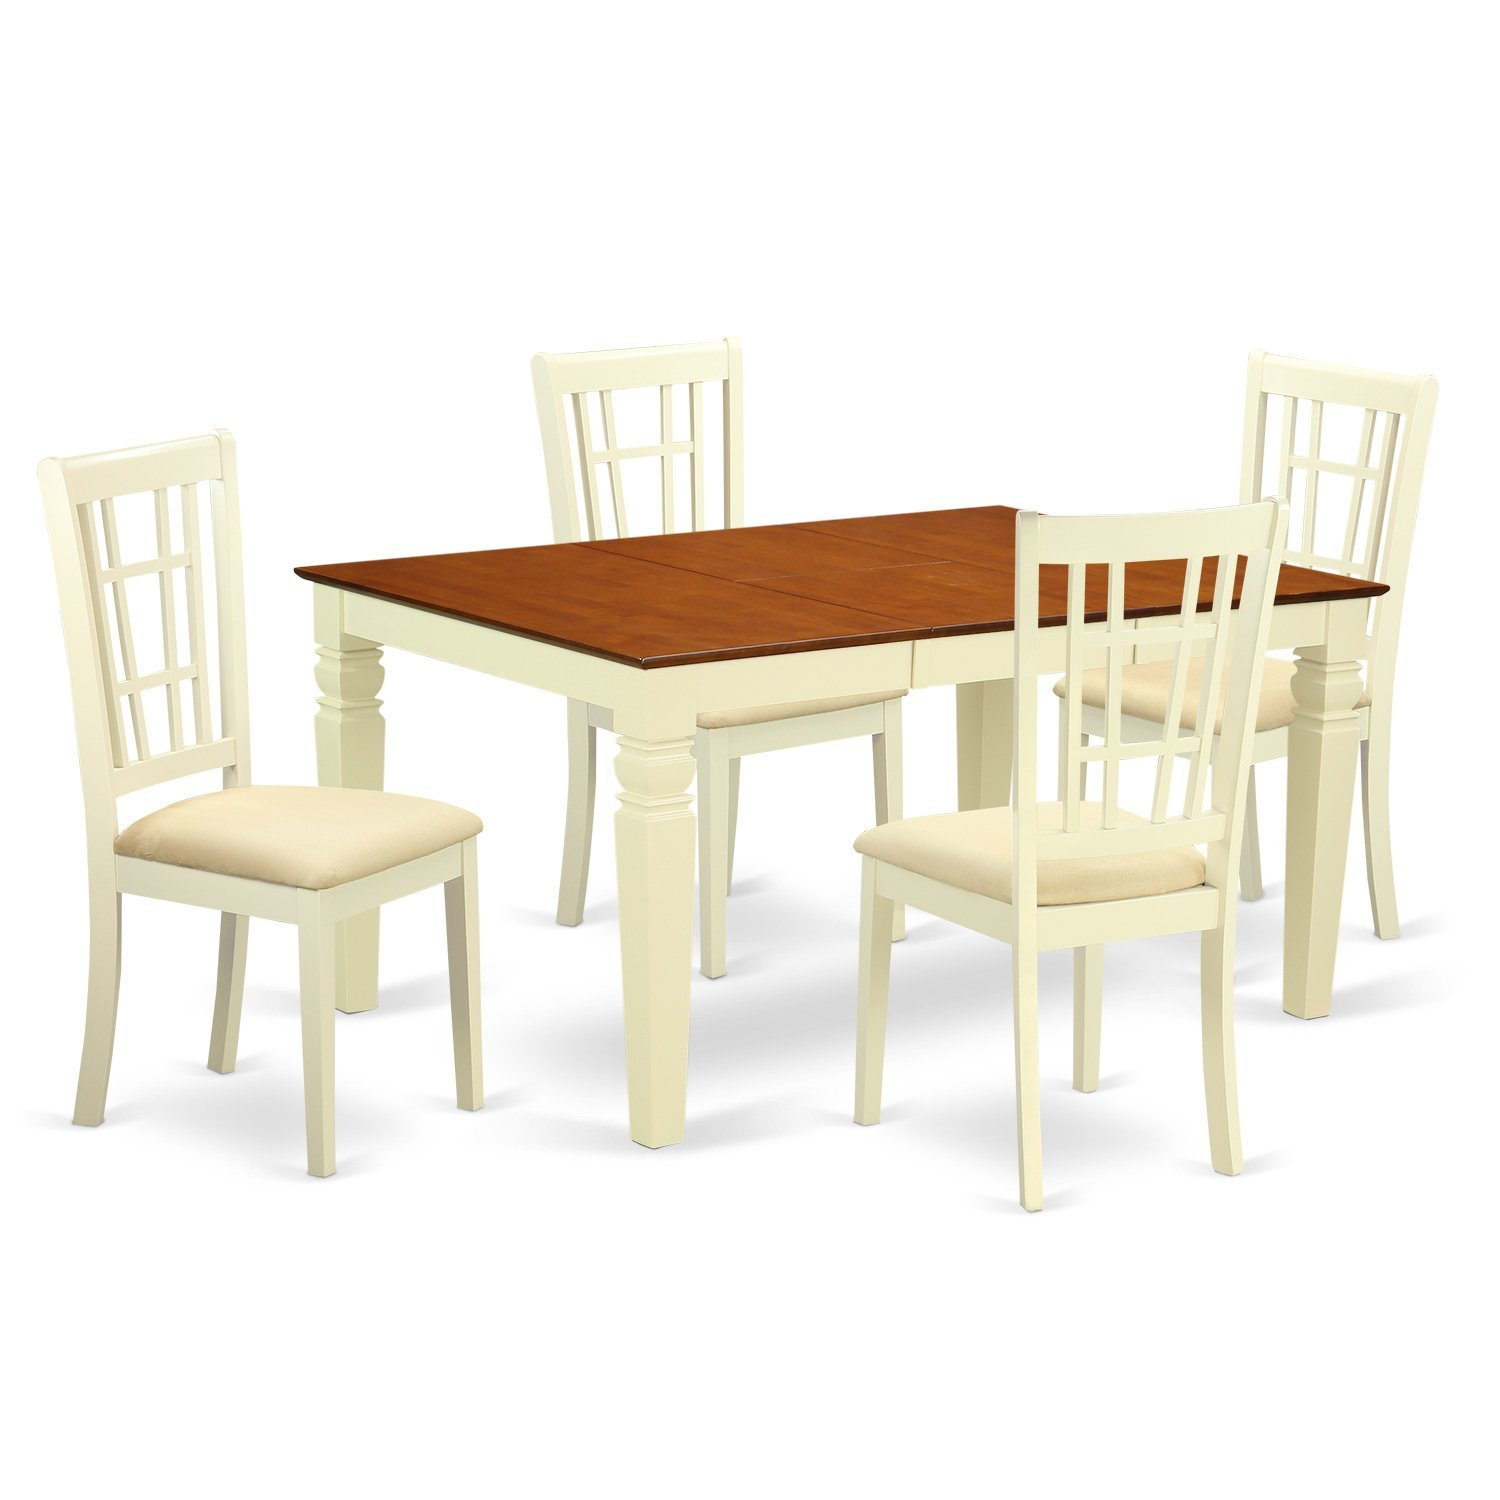 East West Furniture Weston WENI5-BMK-C 5 Pc Dinette Set with a Dinning Table and 4 Microfiber Dining Chairs, Buttermilk and Cherry